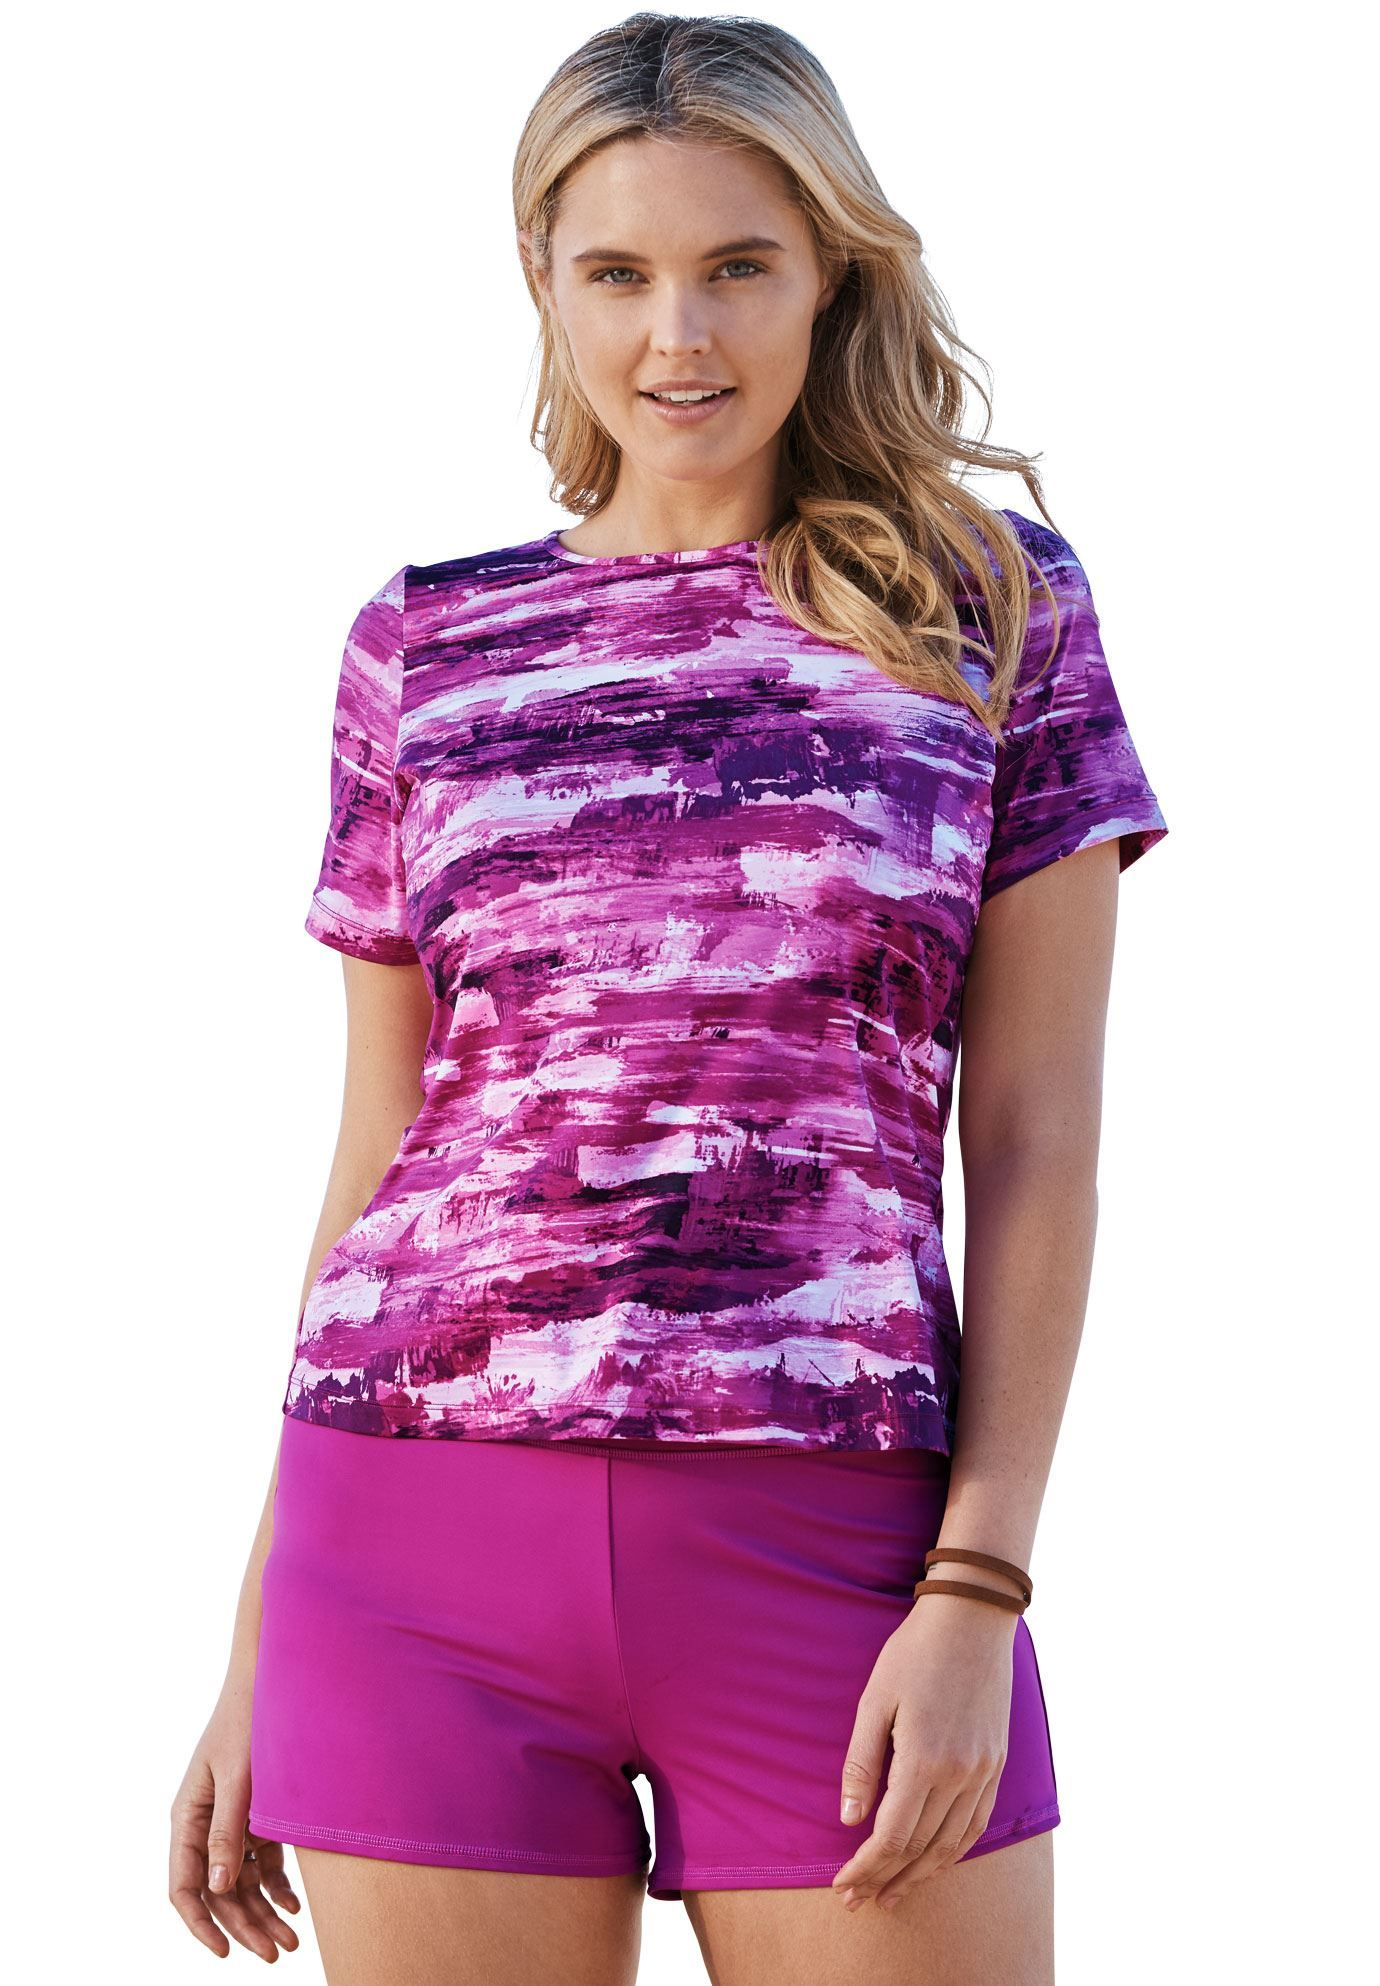 6917951523 Swim T-shirt cover-up for sun protection by Swim 365 - Women's Plus Size  Clothing